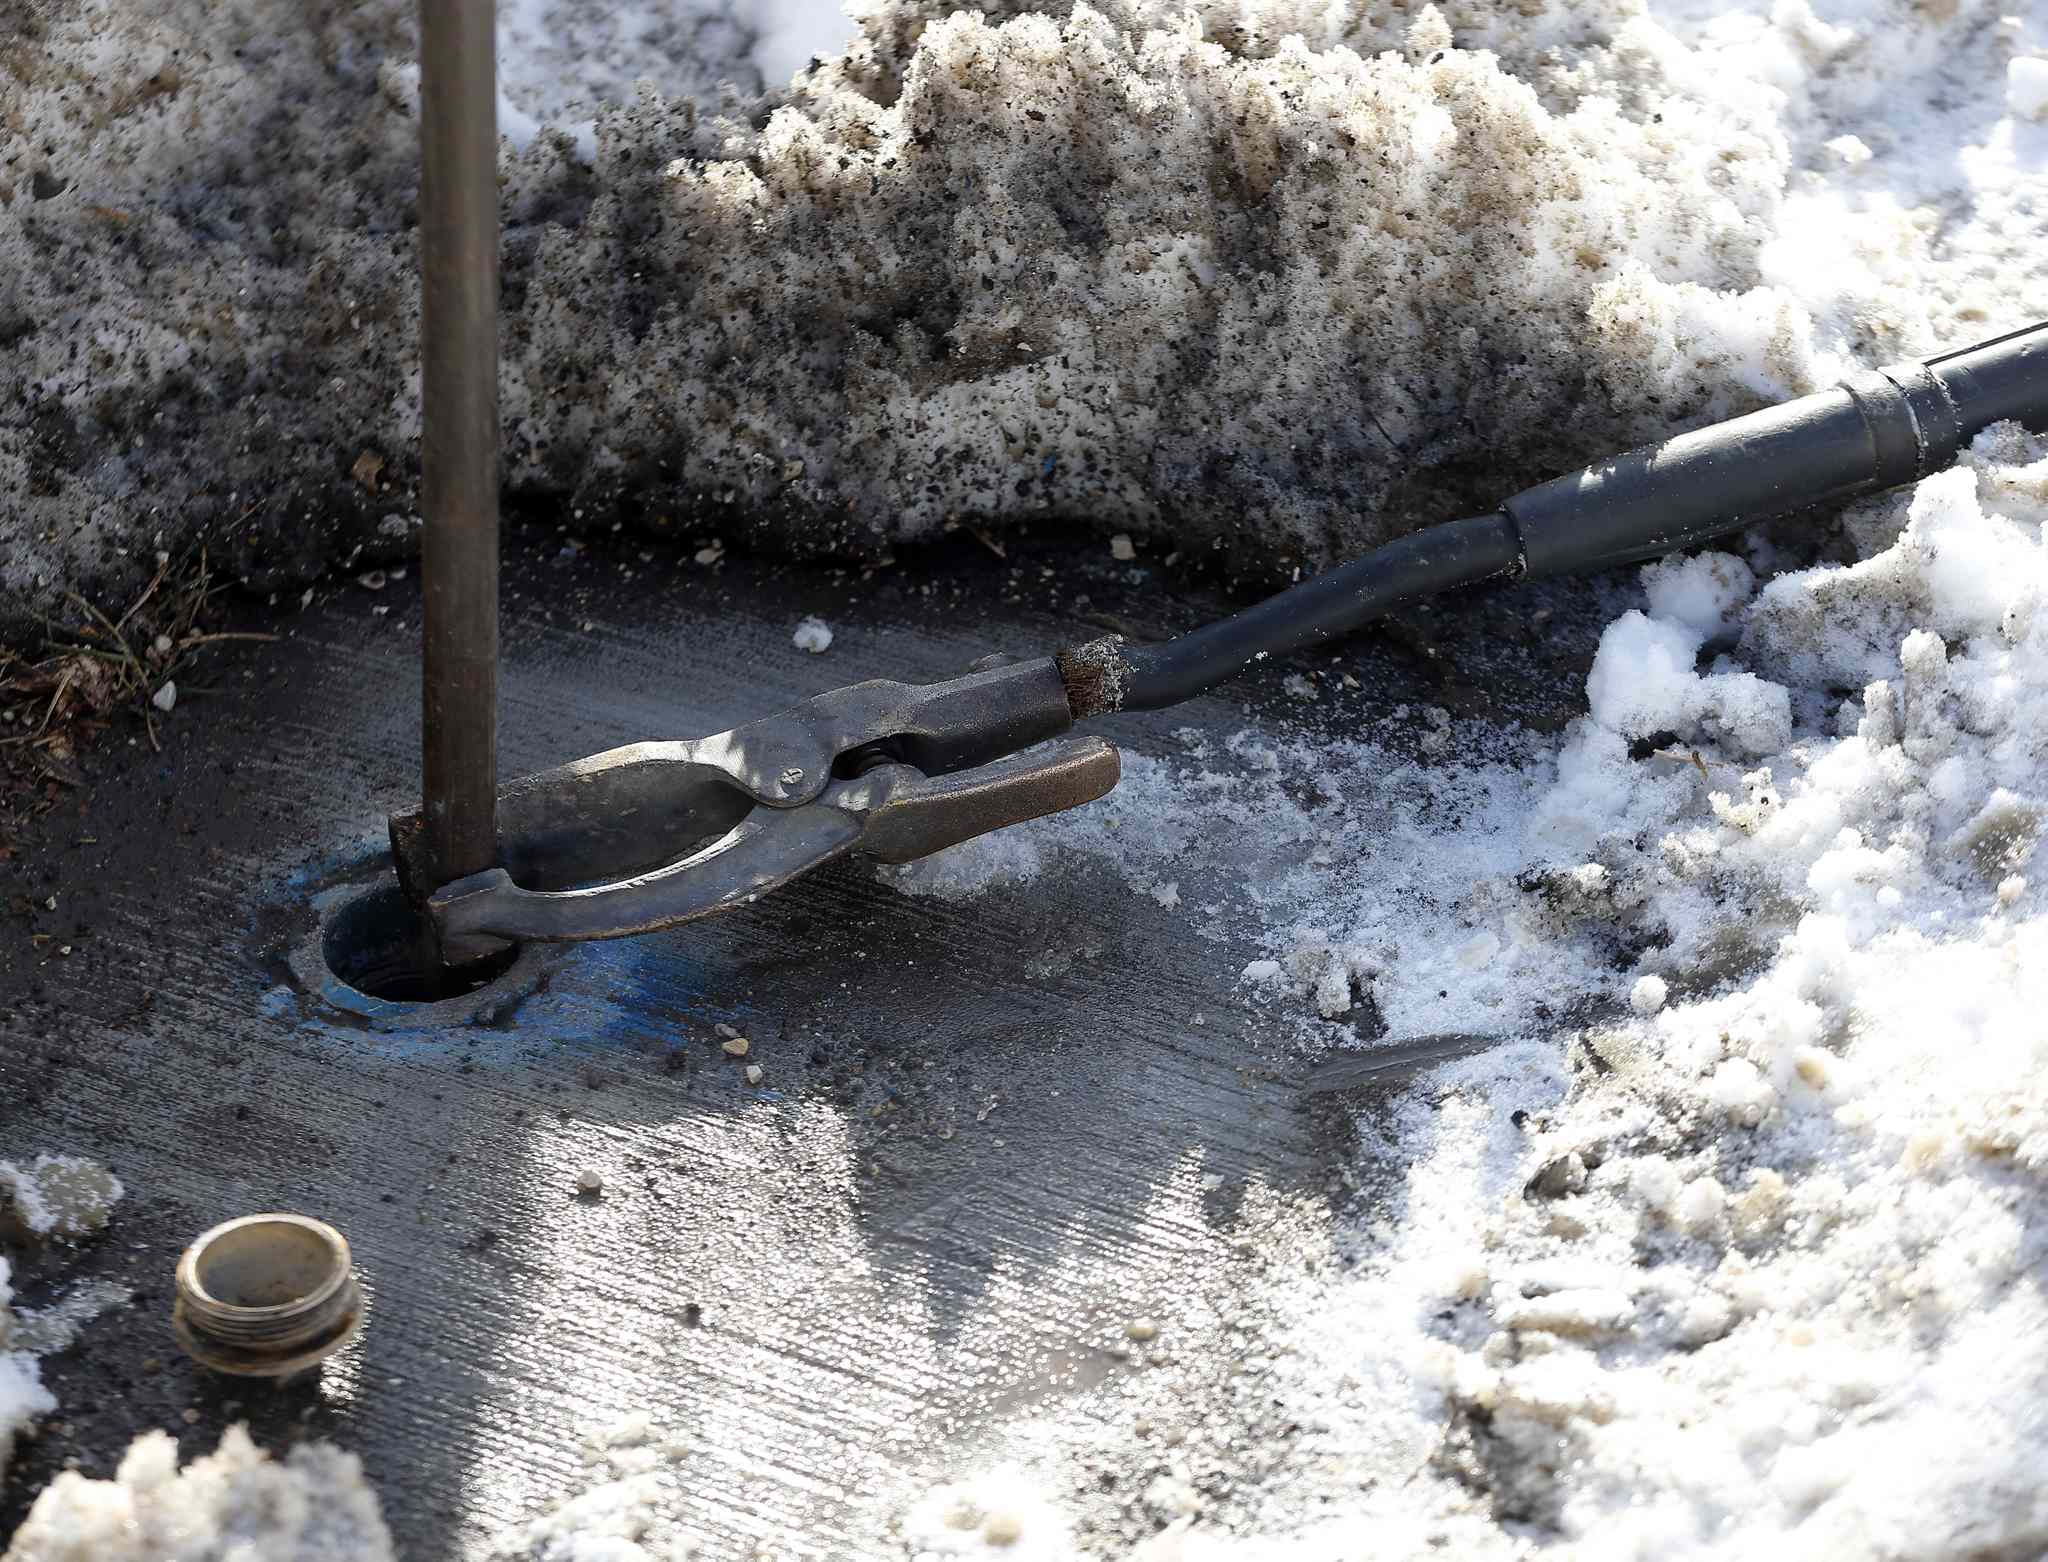 A city worker connects an electrical cable to heat a frozen water pipe.